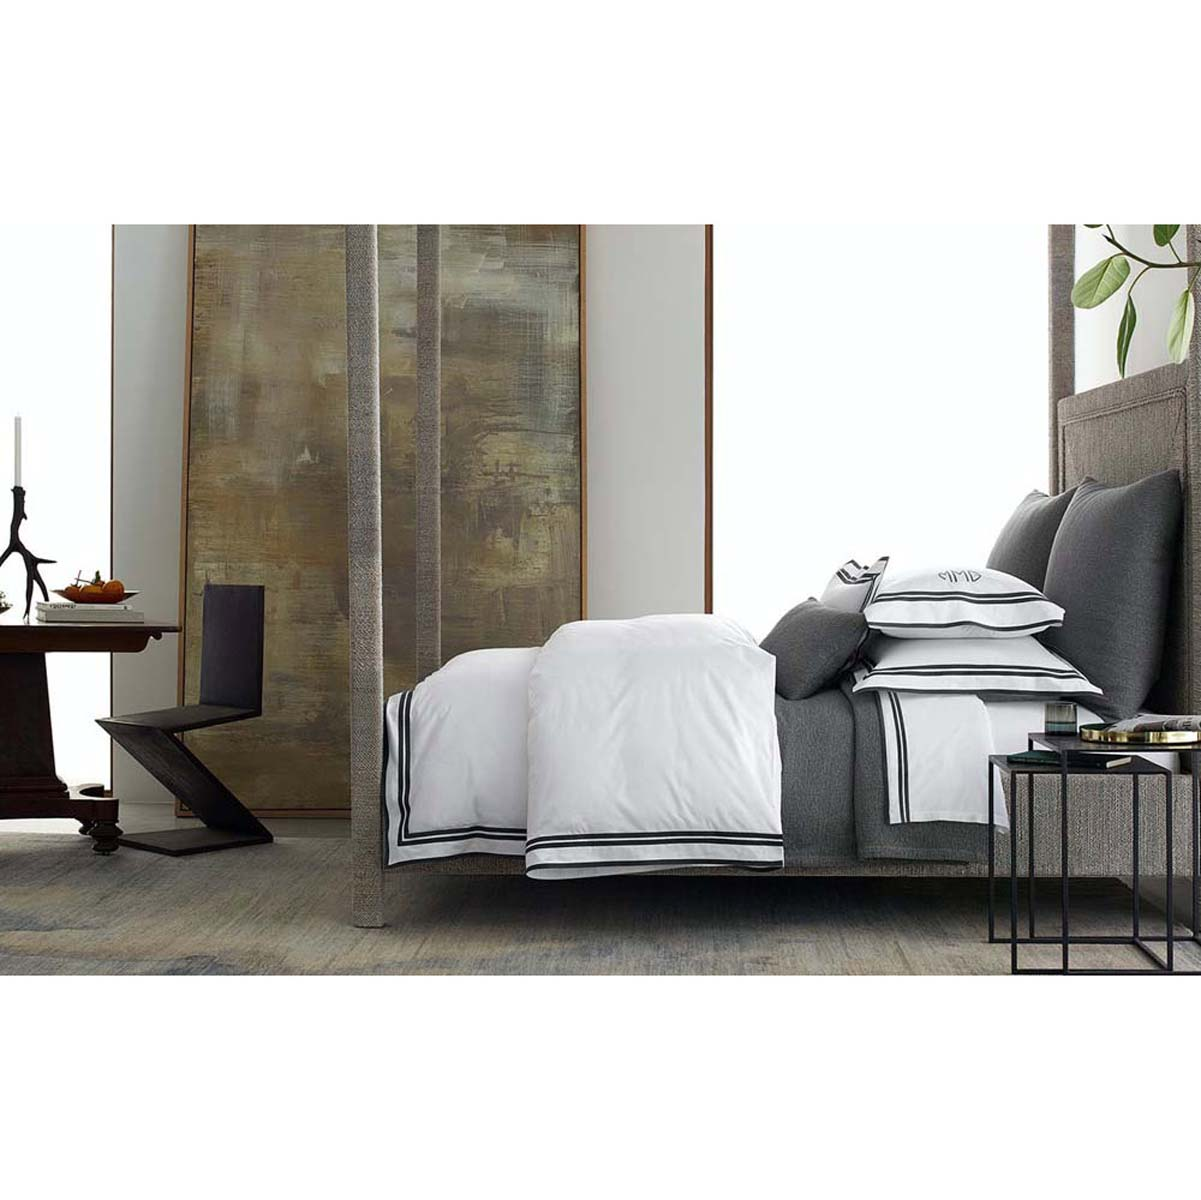 Lovely Luxurious Bed Linens Part - 4: Meridian Luxury Bed Linens By Matouk